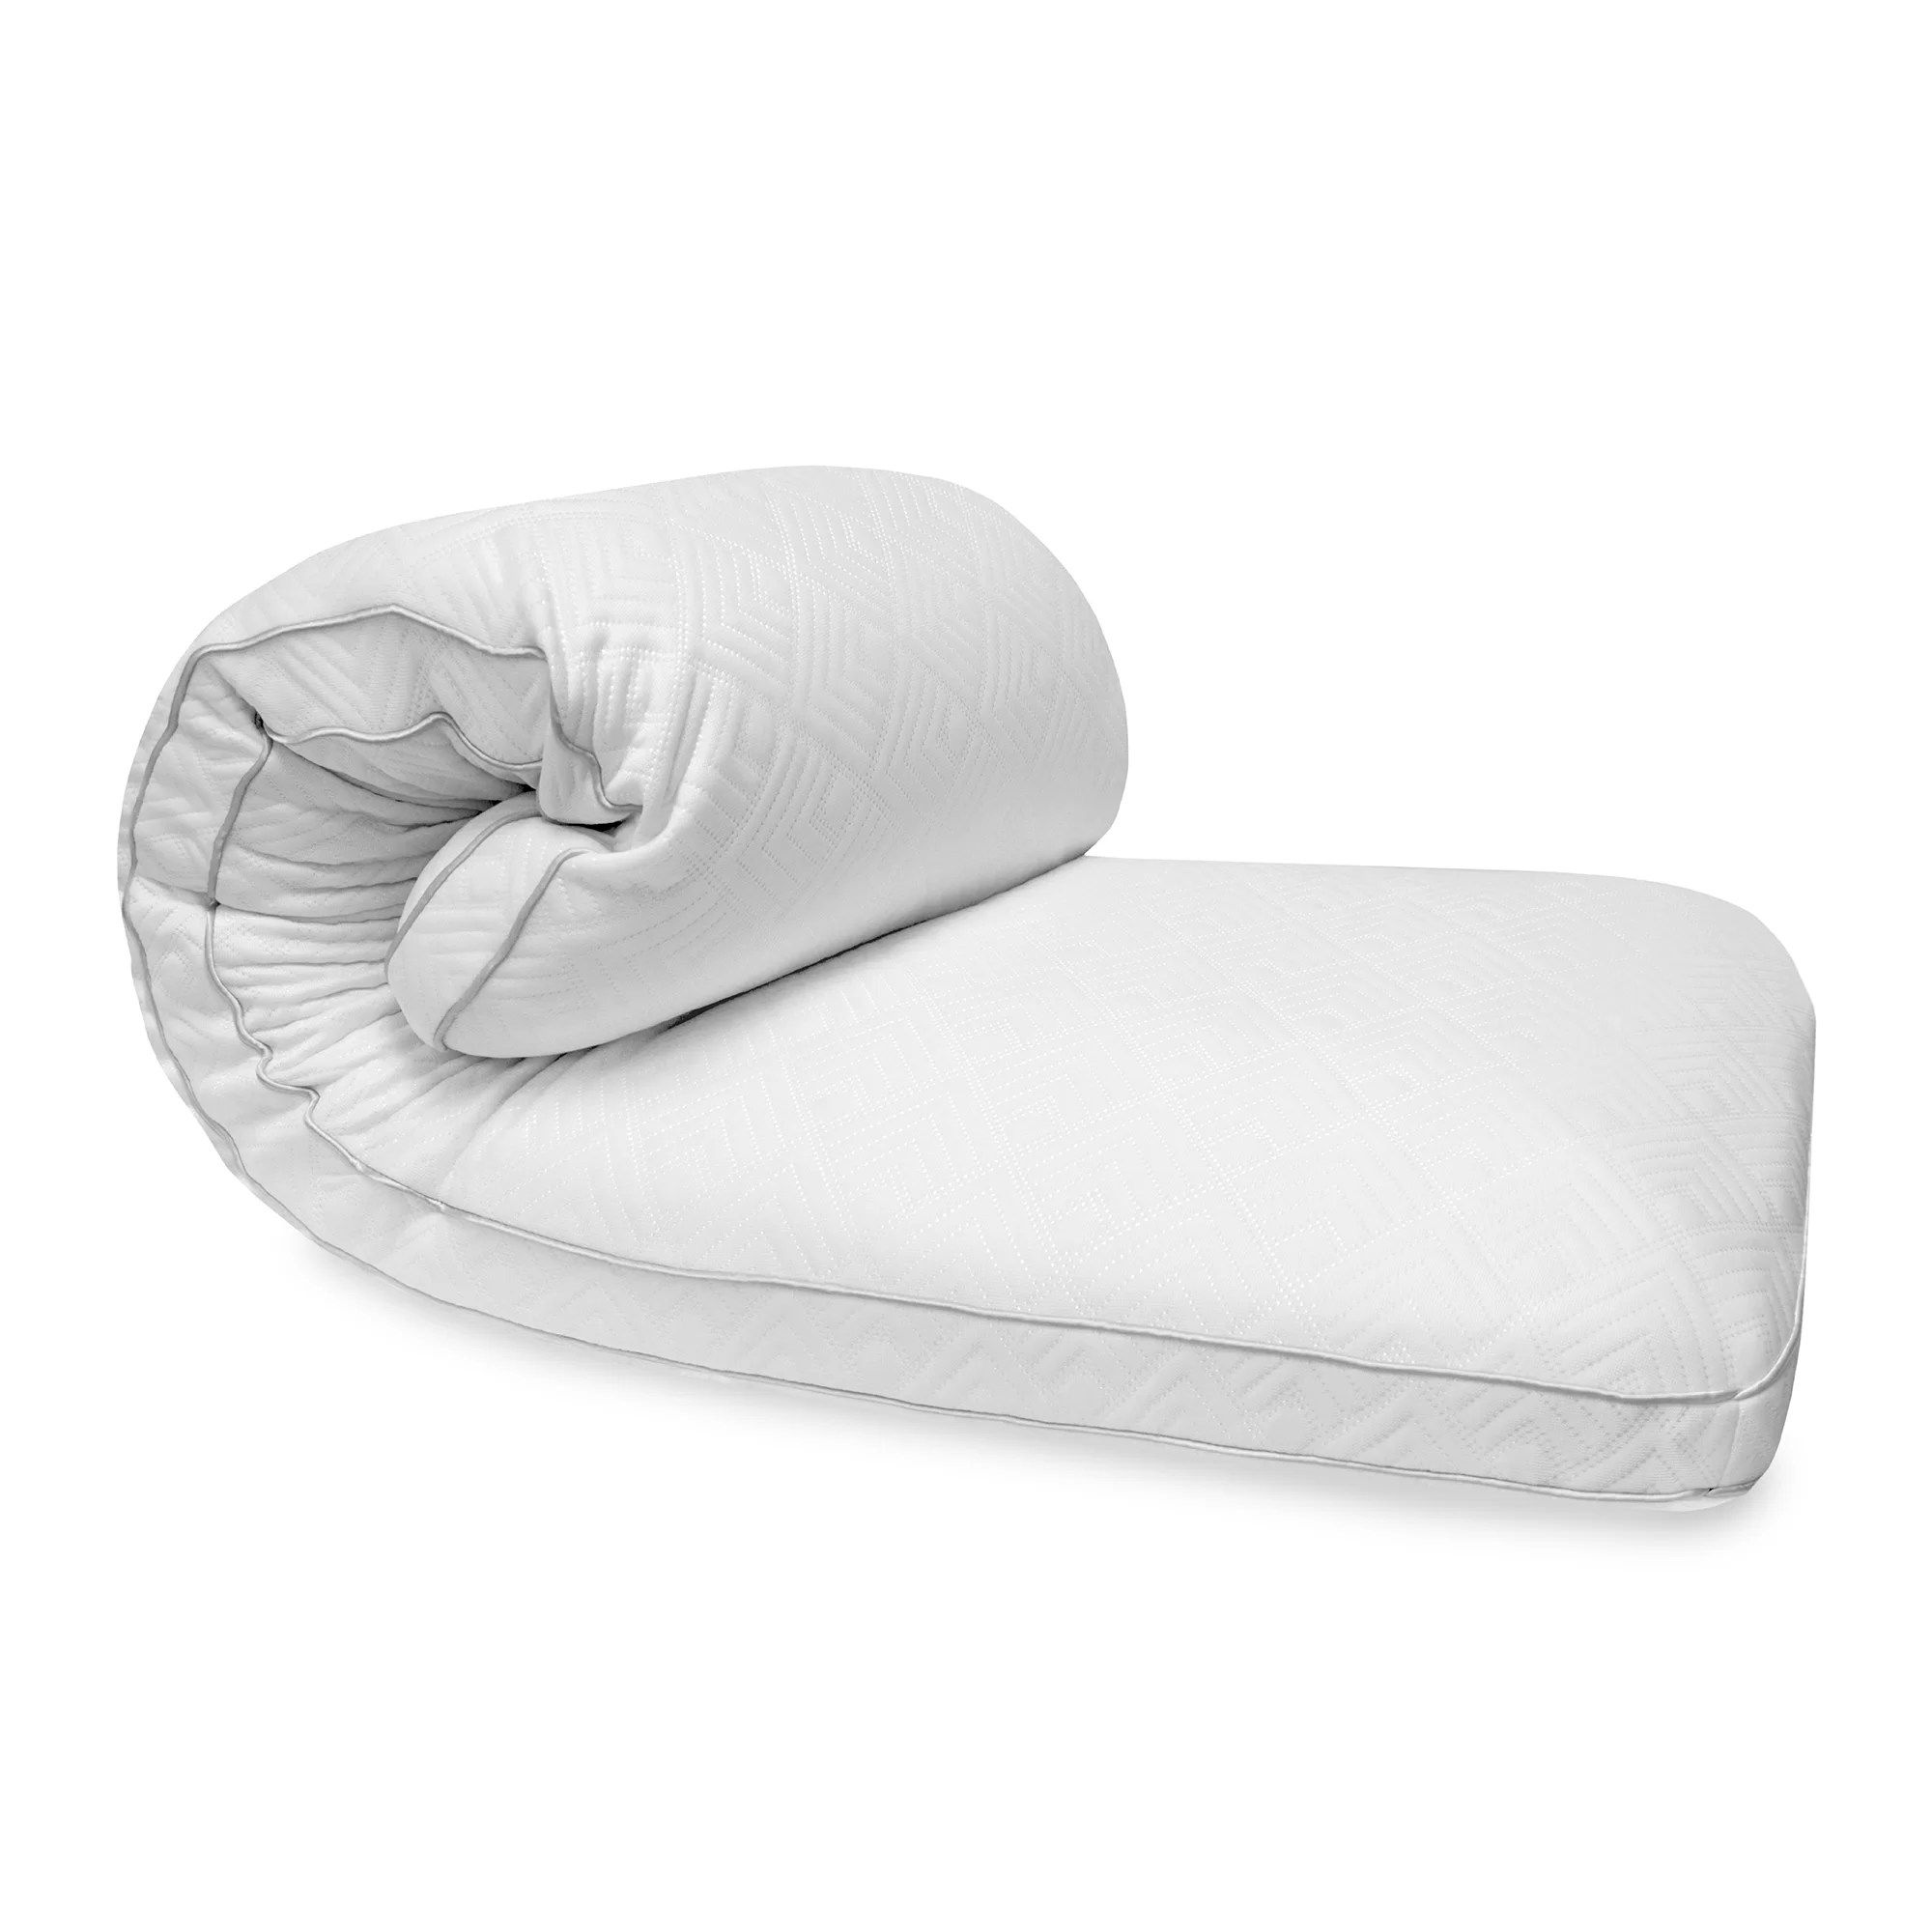 cool nights cooling body pillow bedding